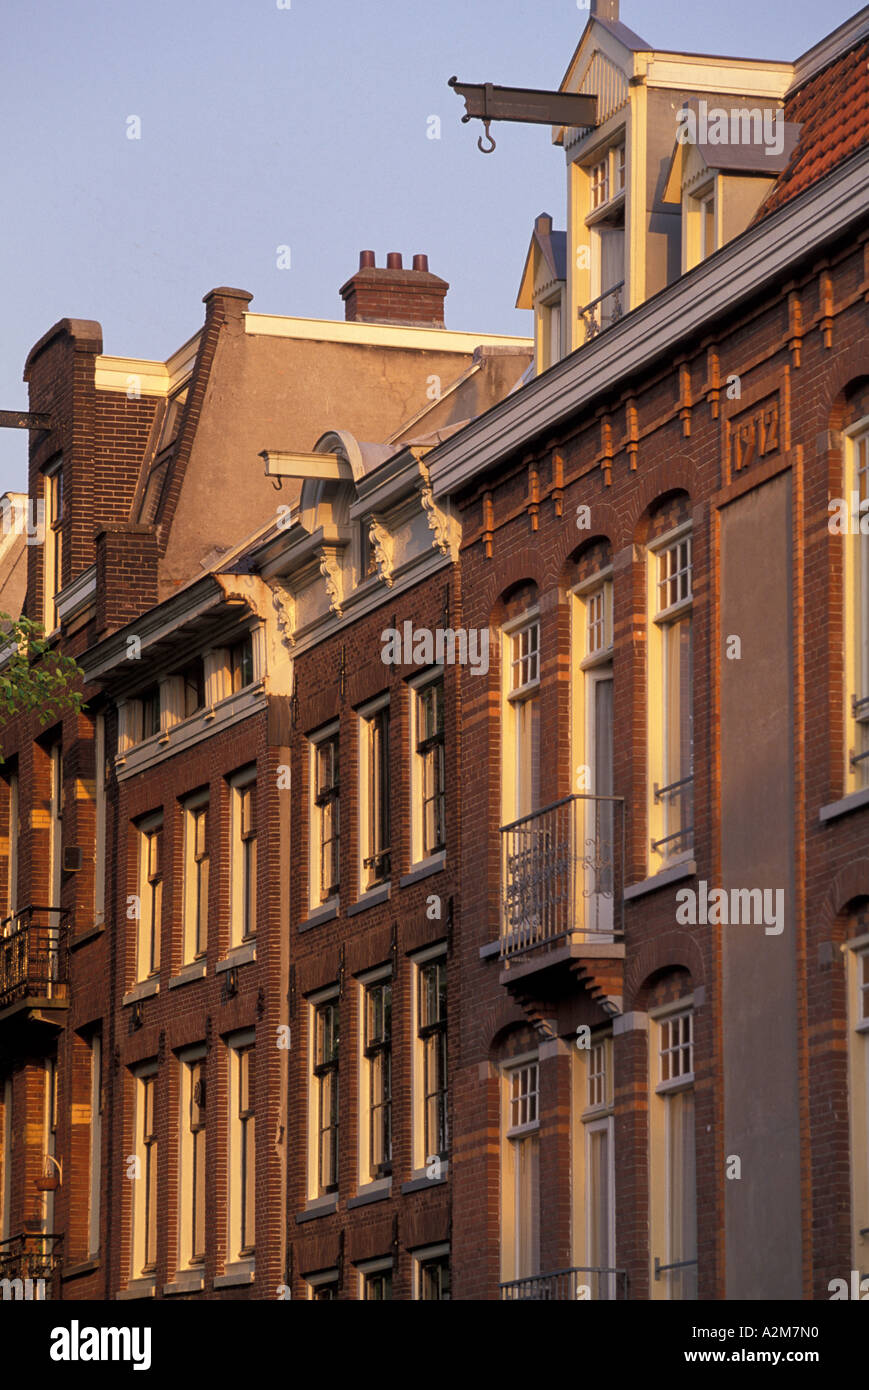 Europe, The Netherlands, Holland, Amsterdam, Prinsengracht Canal, morning light on buildings - Stock Image